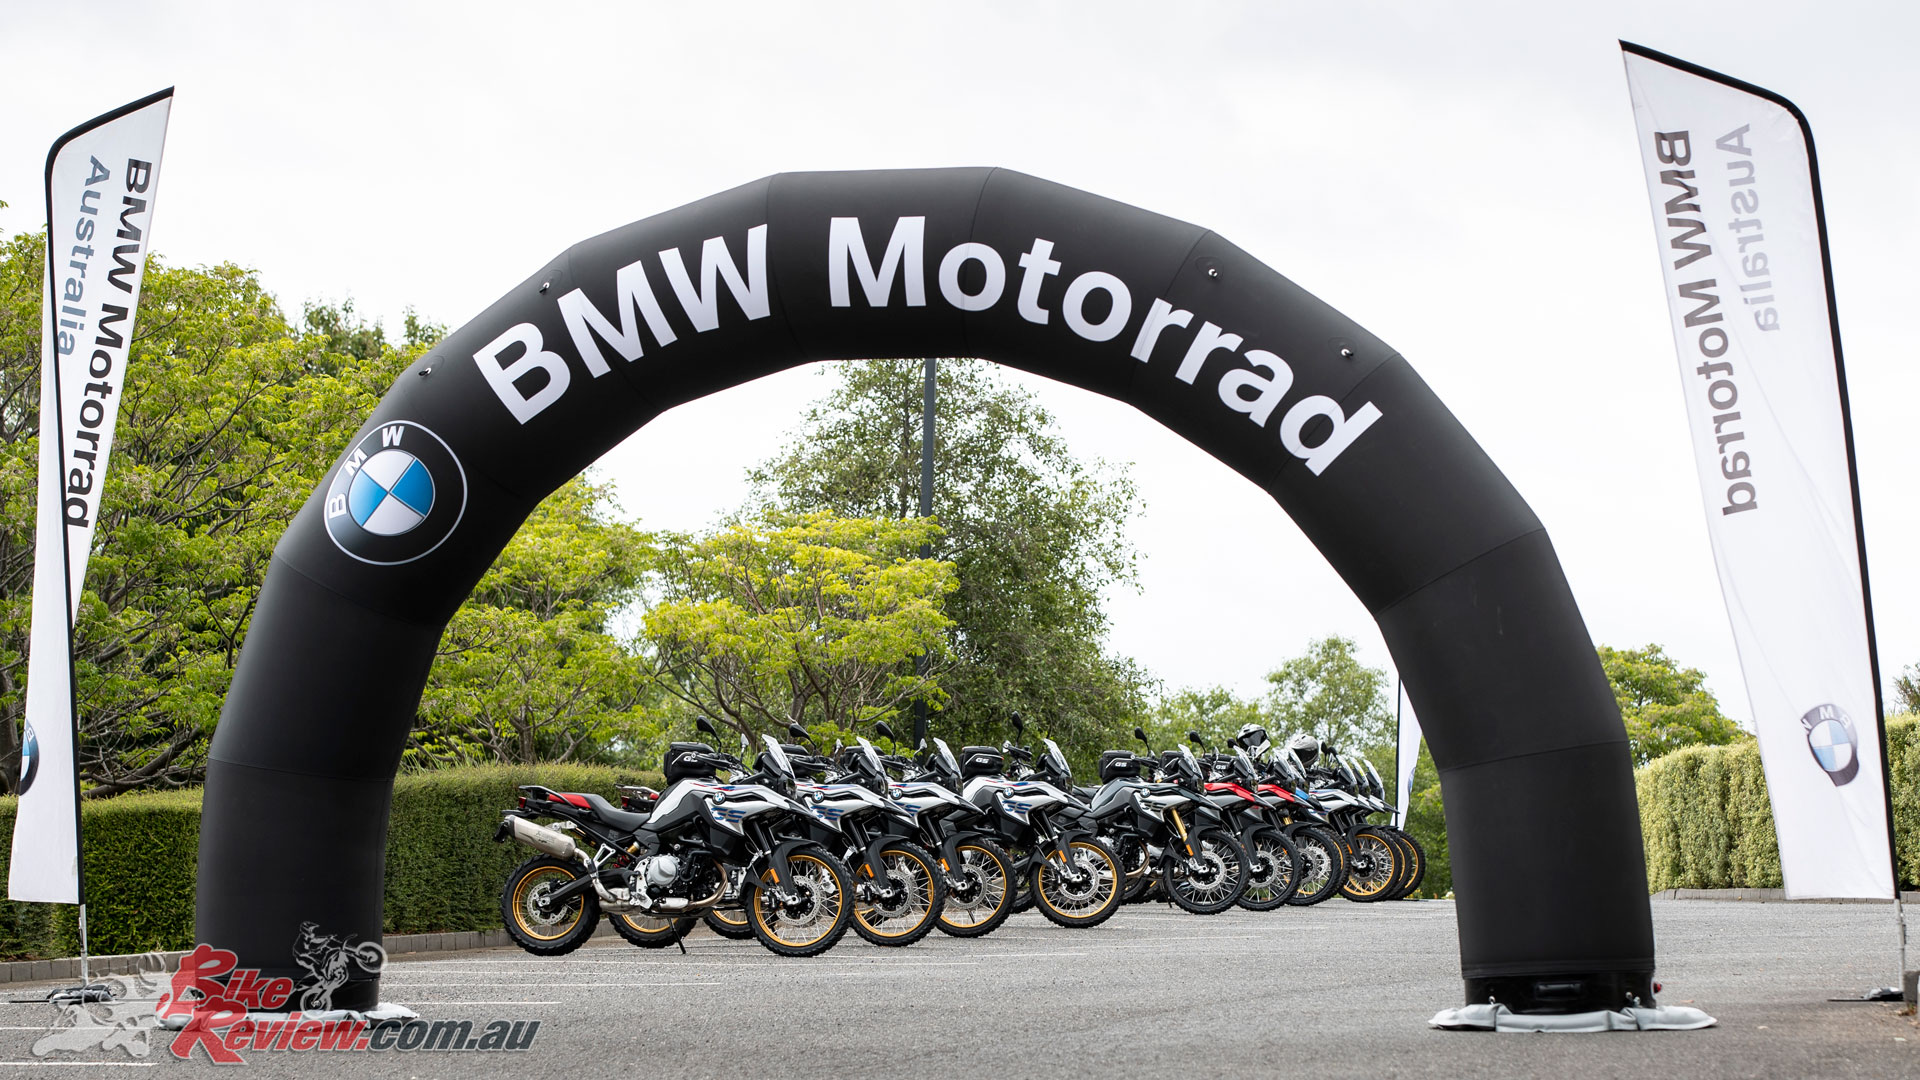 The 2019 BMW F 850 GS Australian Launch was held in Victoria's Macedon ranges.